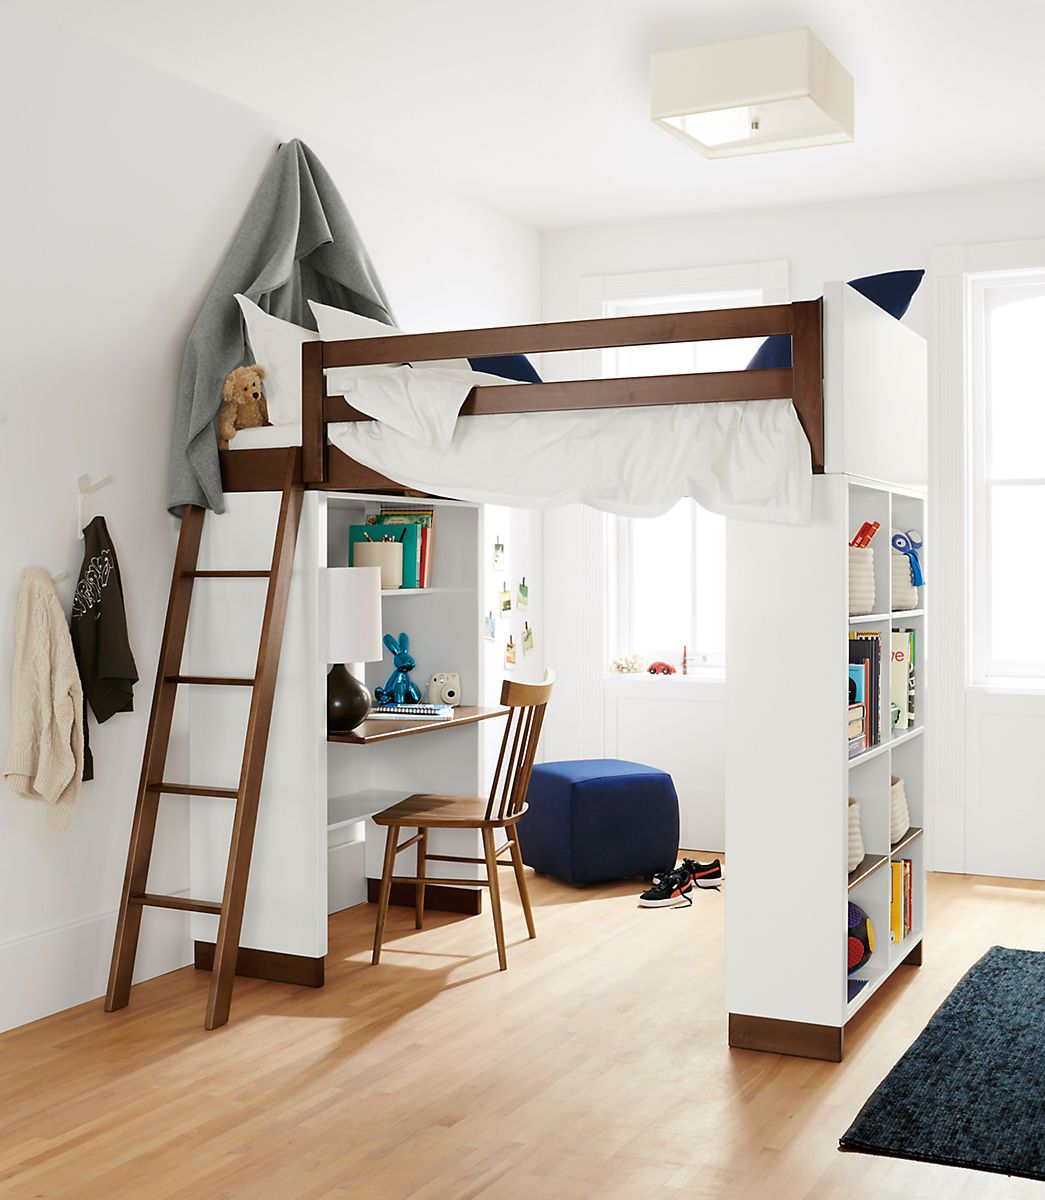 Kids Modern Bunk Bed Moda Loft Beds With Desk And Bookcase Options In 2018